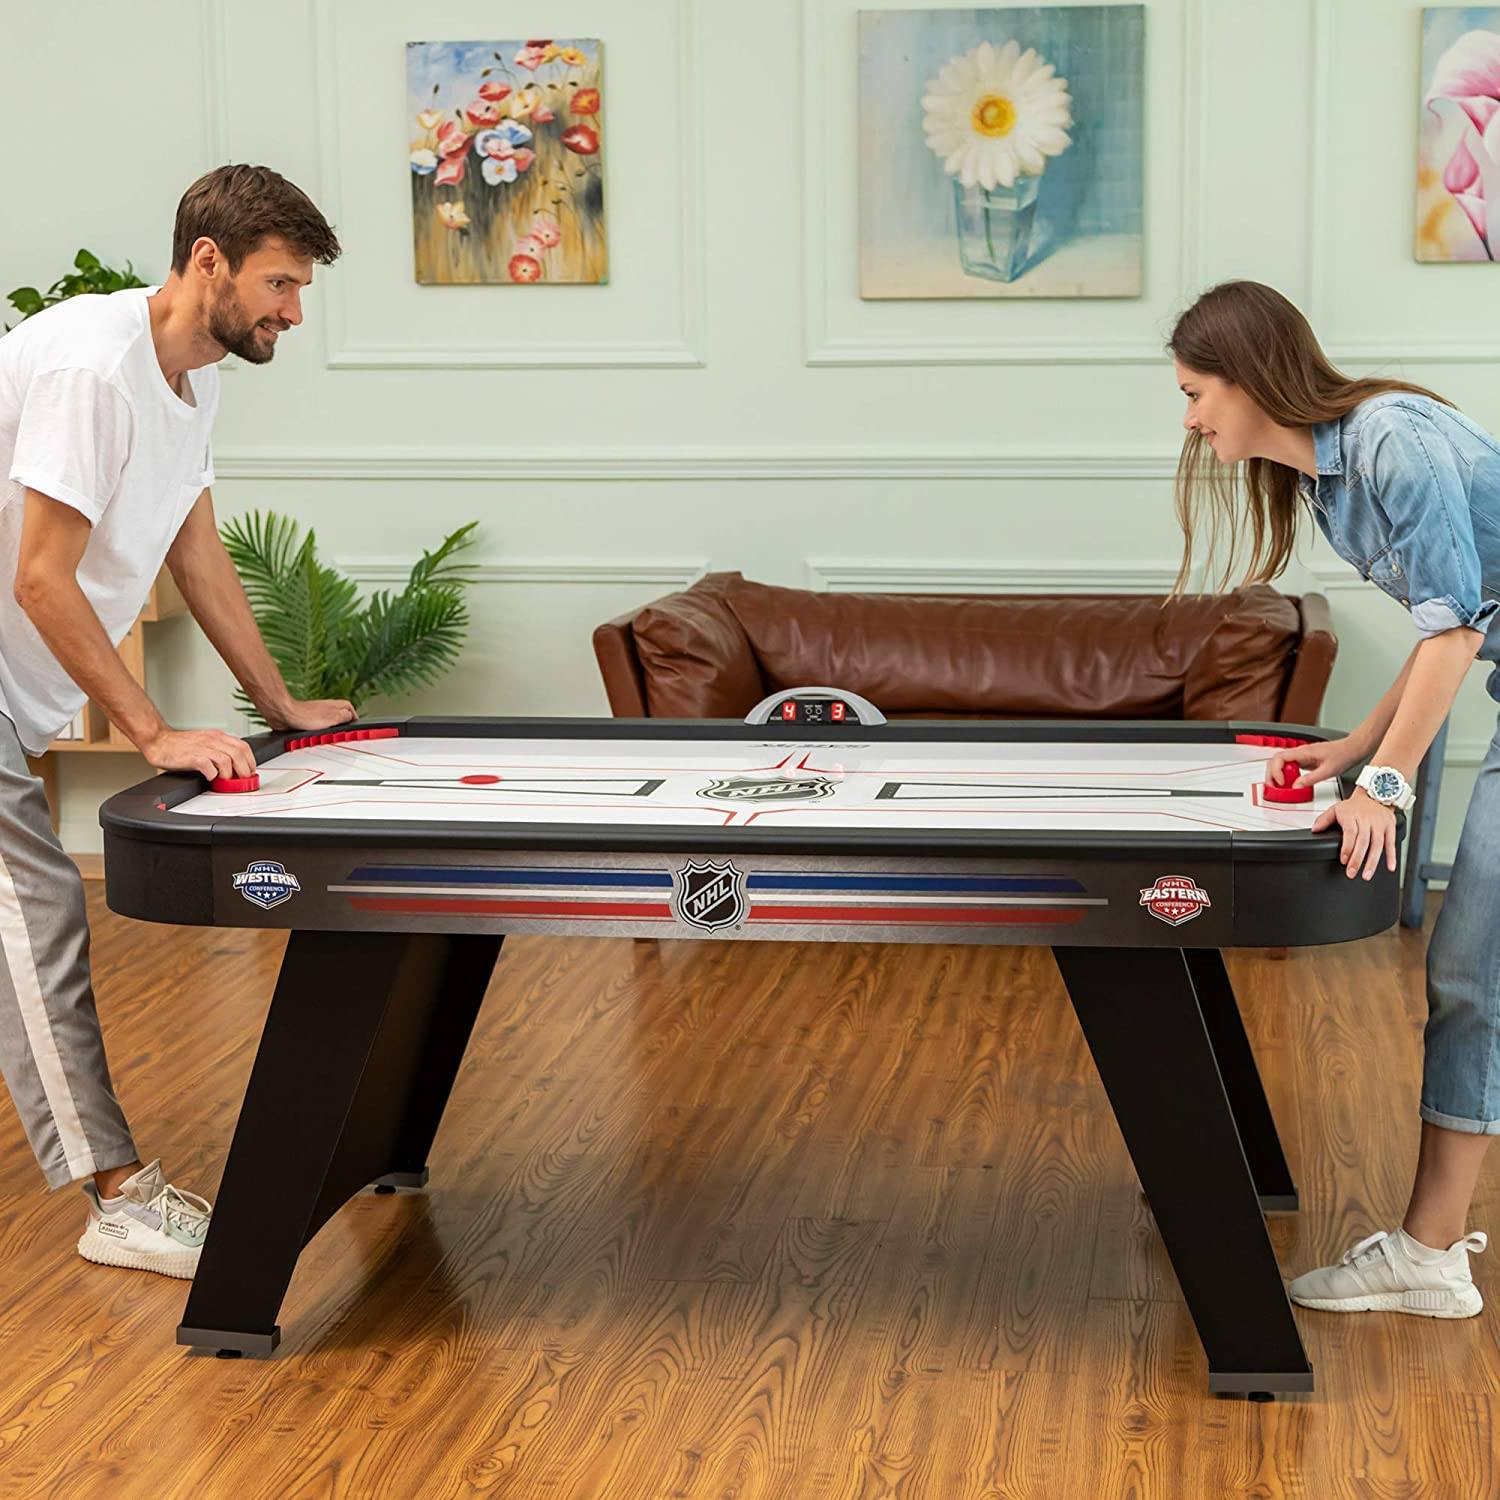 Eastpoint 72 Mid-Size NHL Air Attack Indoor Hover Hockey Table Features